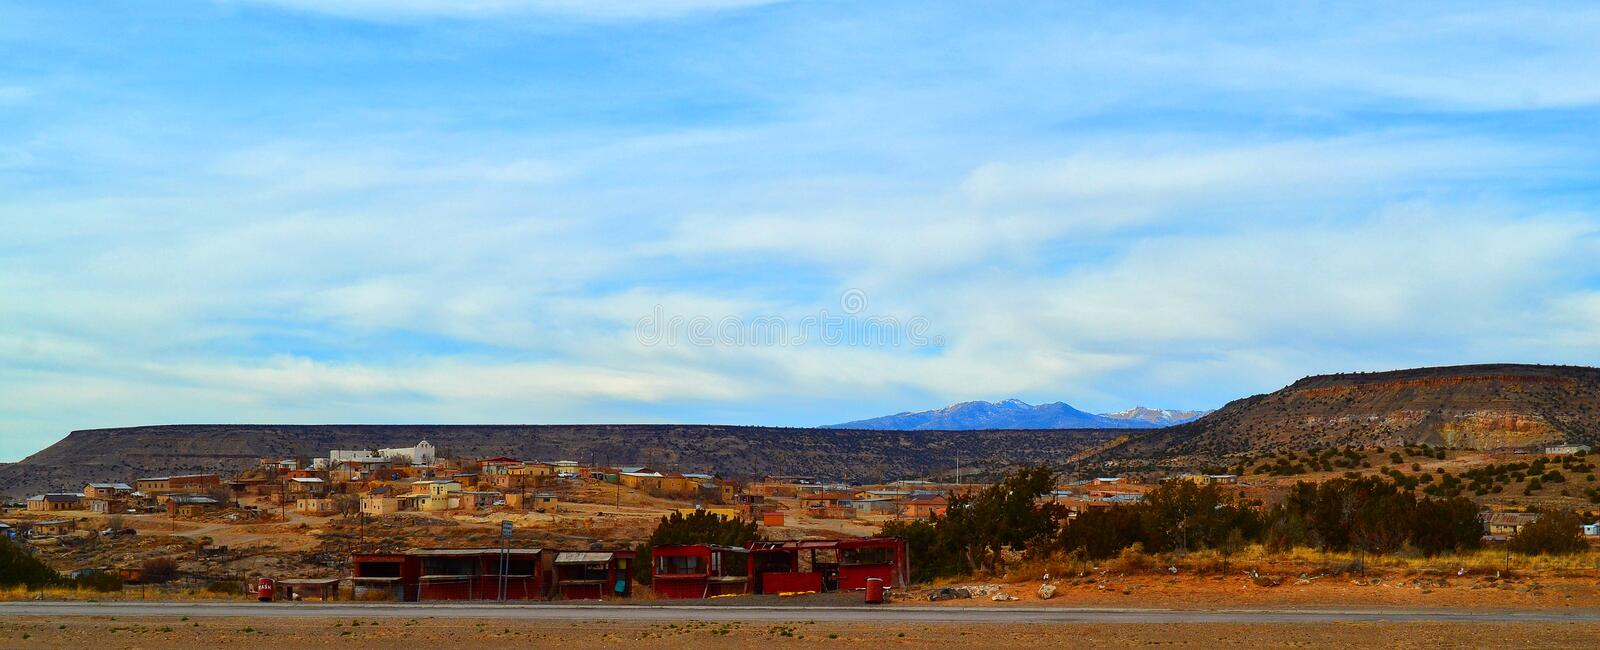 A Native American (Indian) Village. Laguna Pueblo, a Native American village in New Mexico with San Jose Mission-- a white church sitting on the hill royalty free stock photos